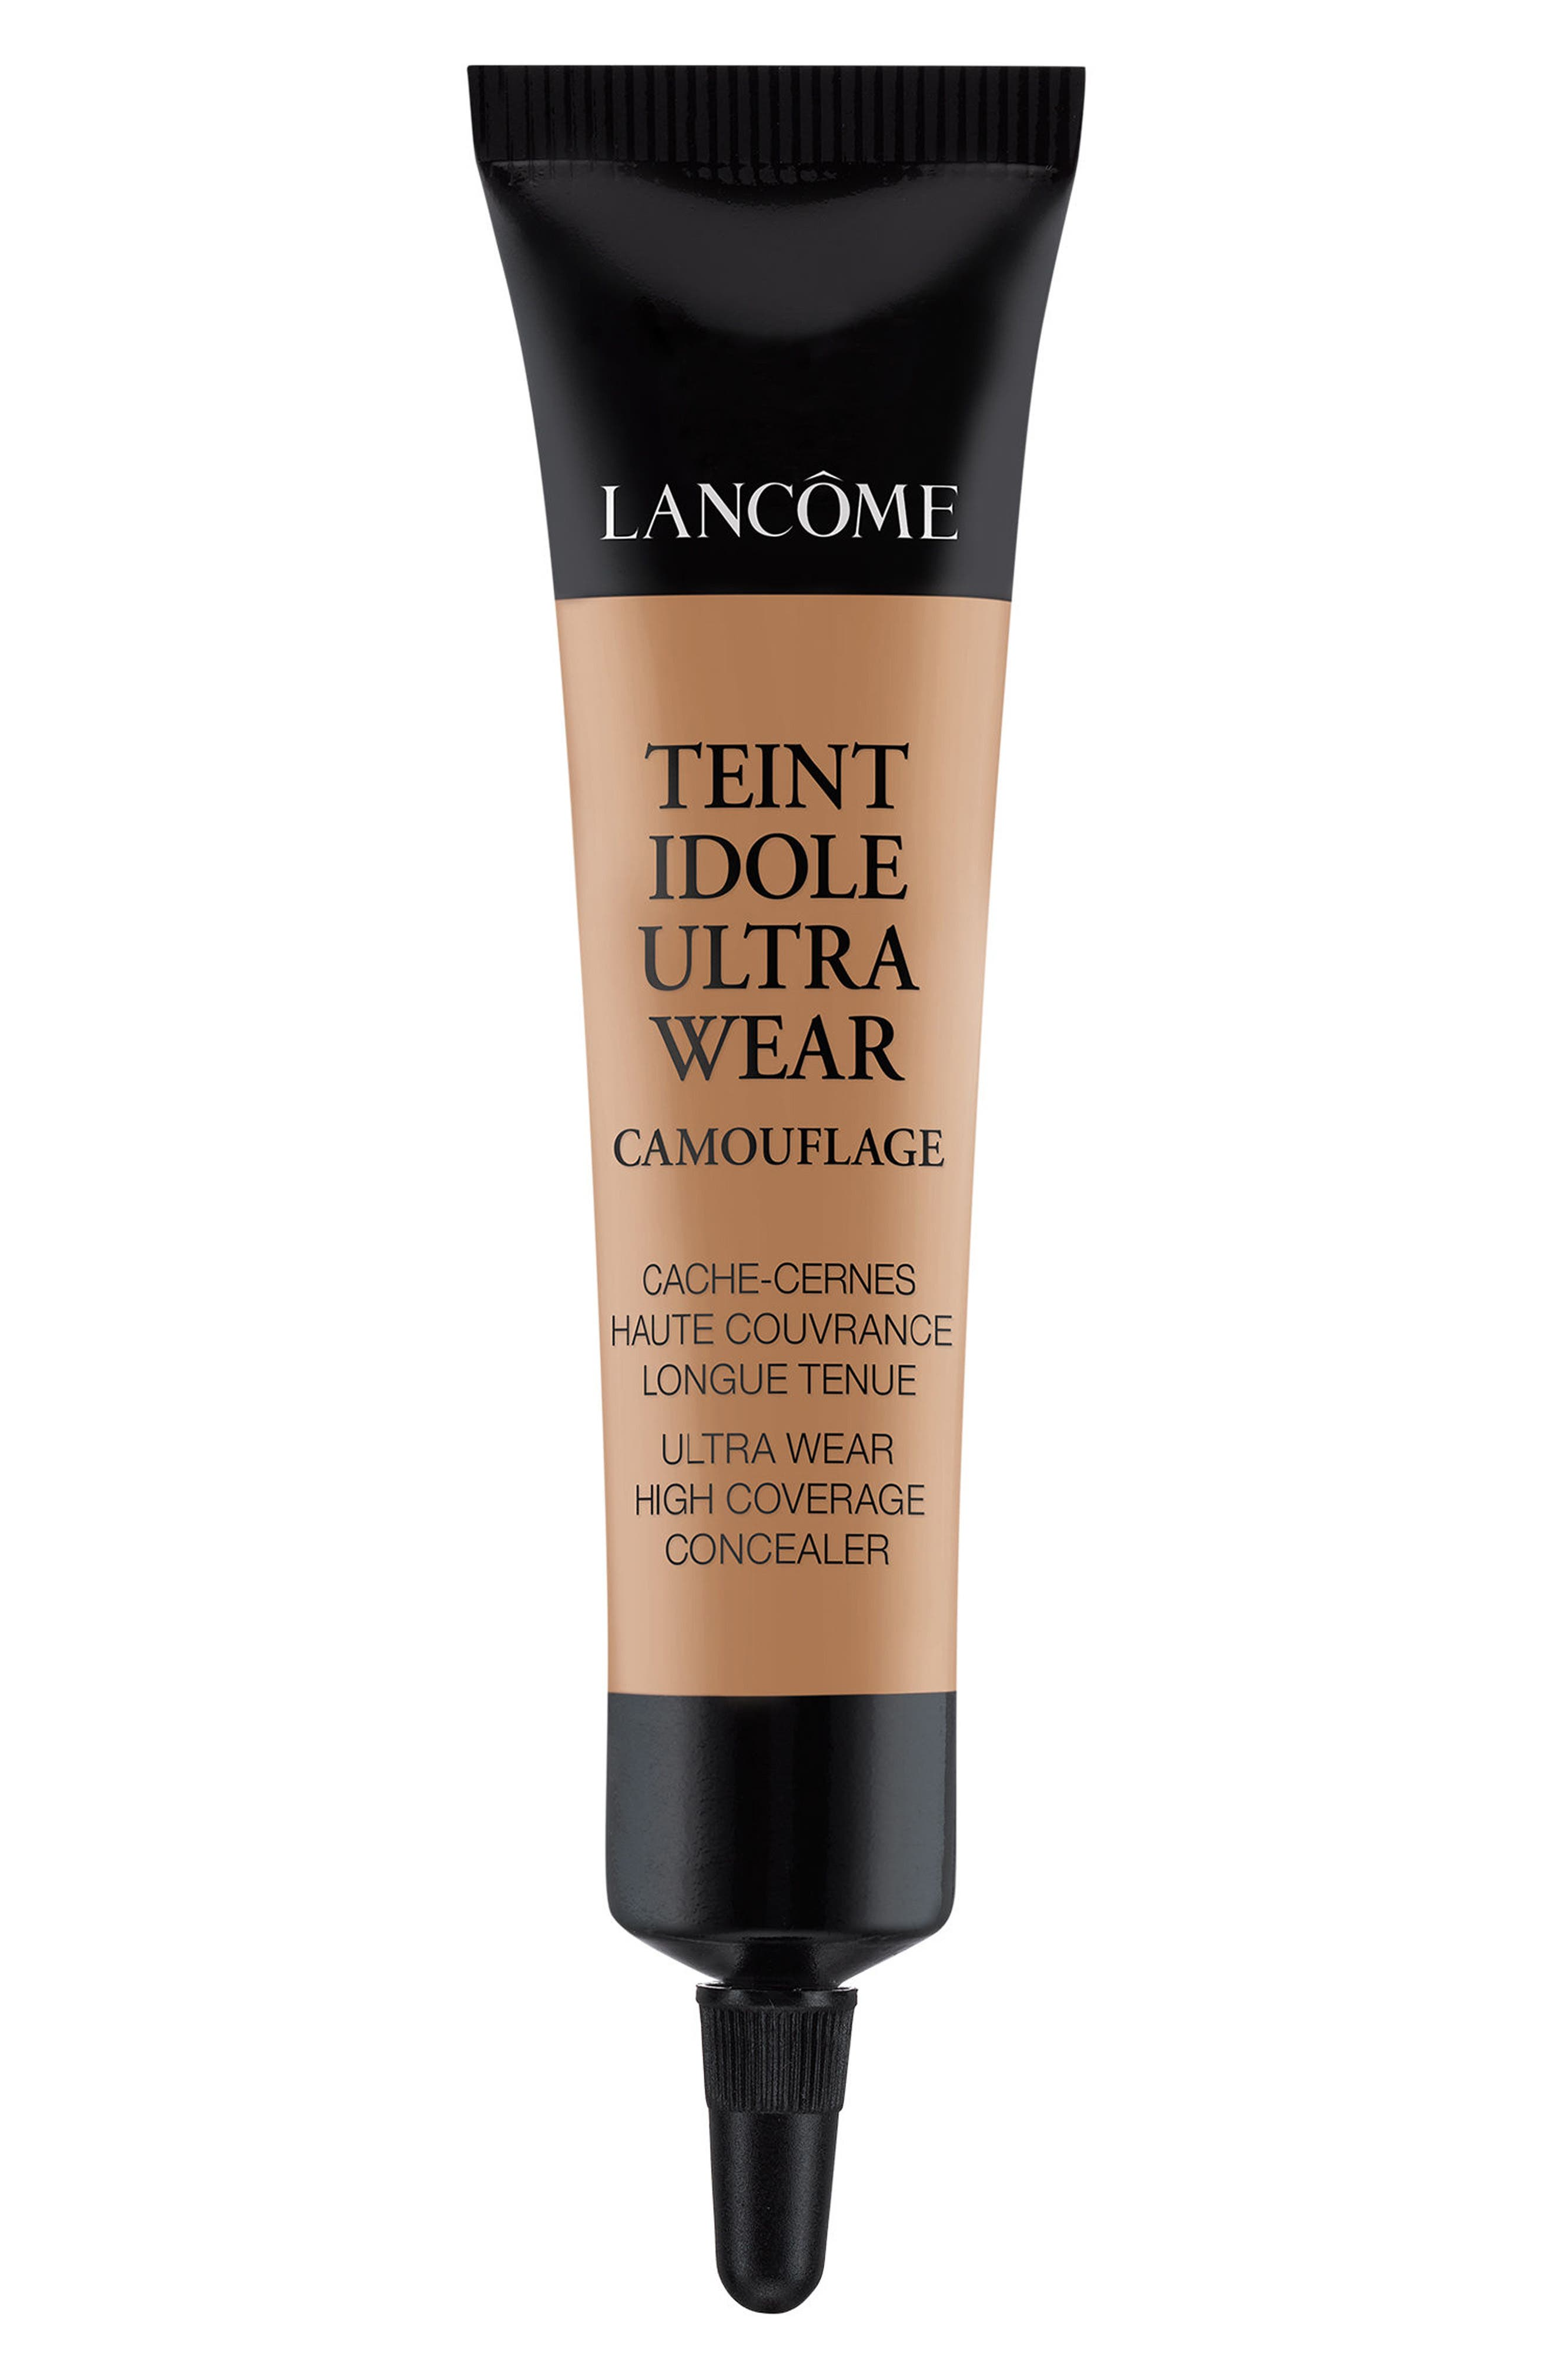 Teint Idole Ultra Wear Camouflage Concealer,                             Main thumbnail 1, color,                             370 Bisque W